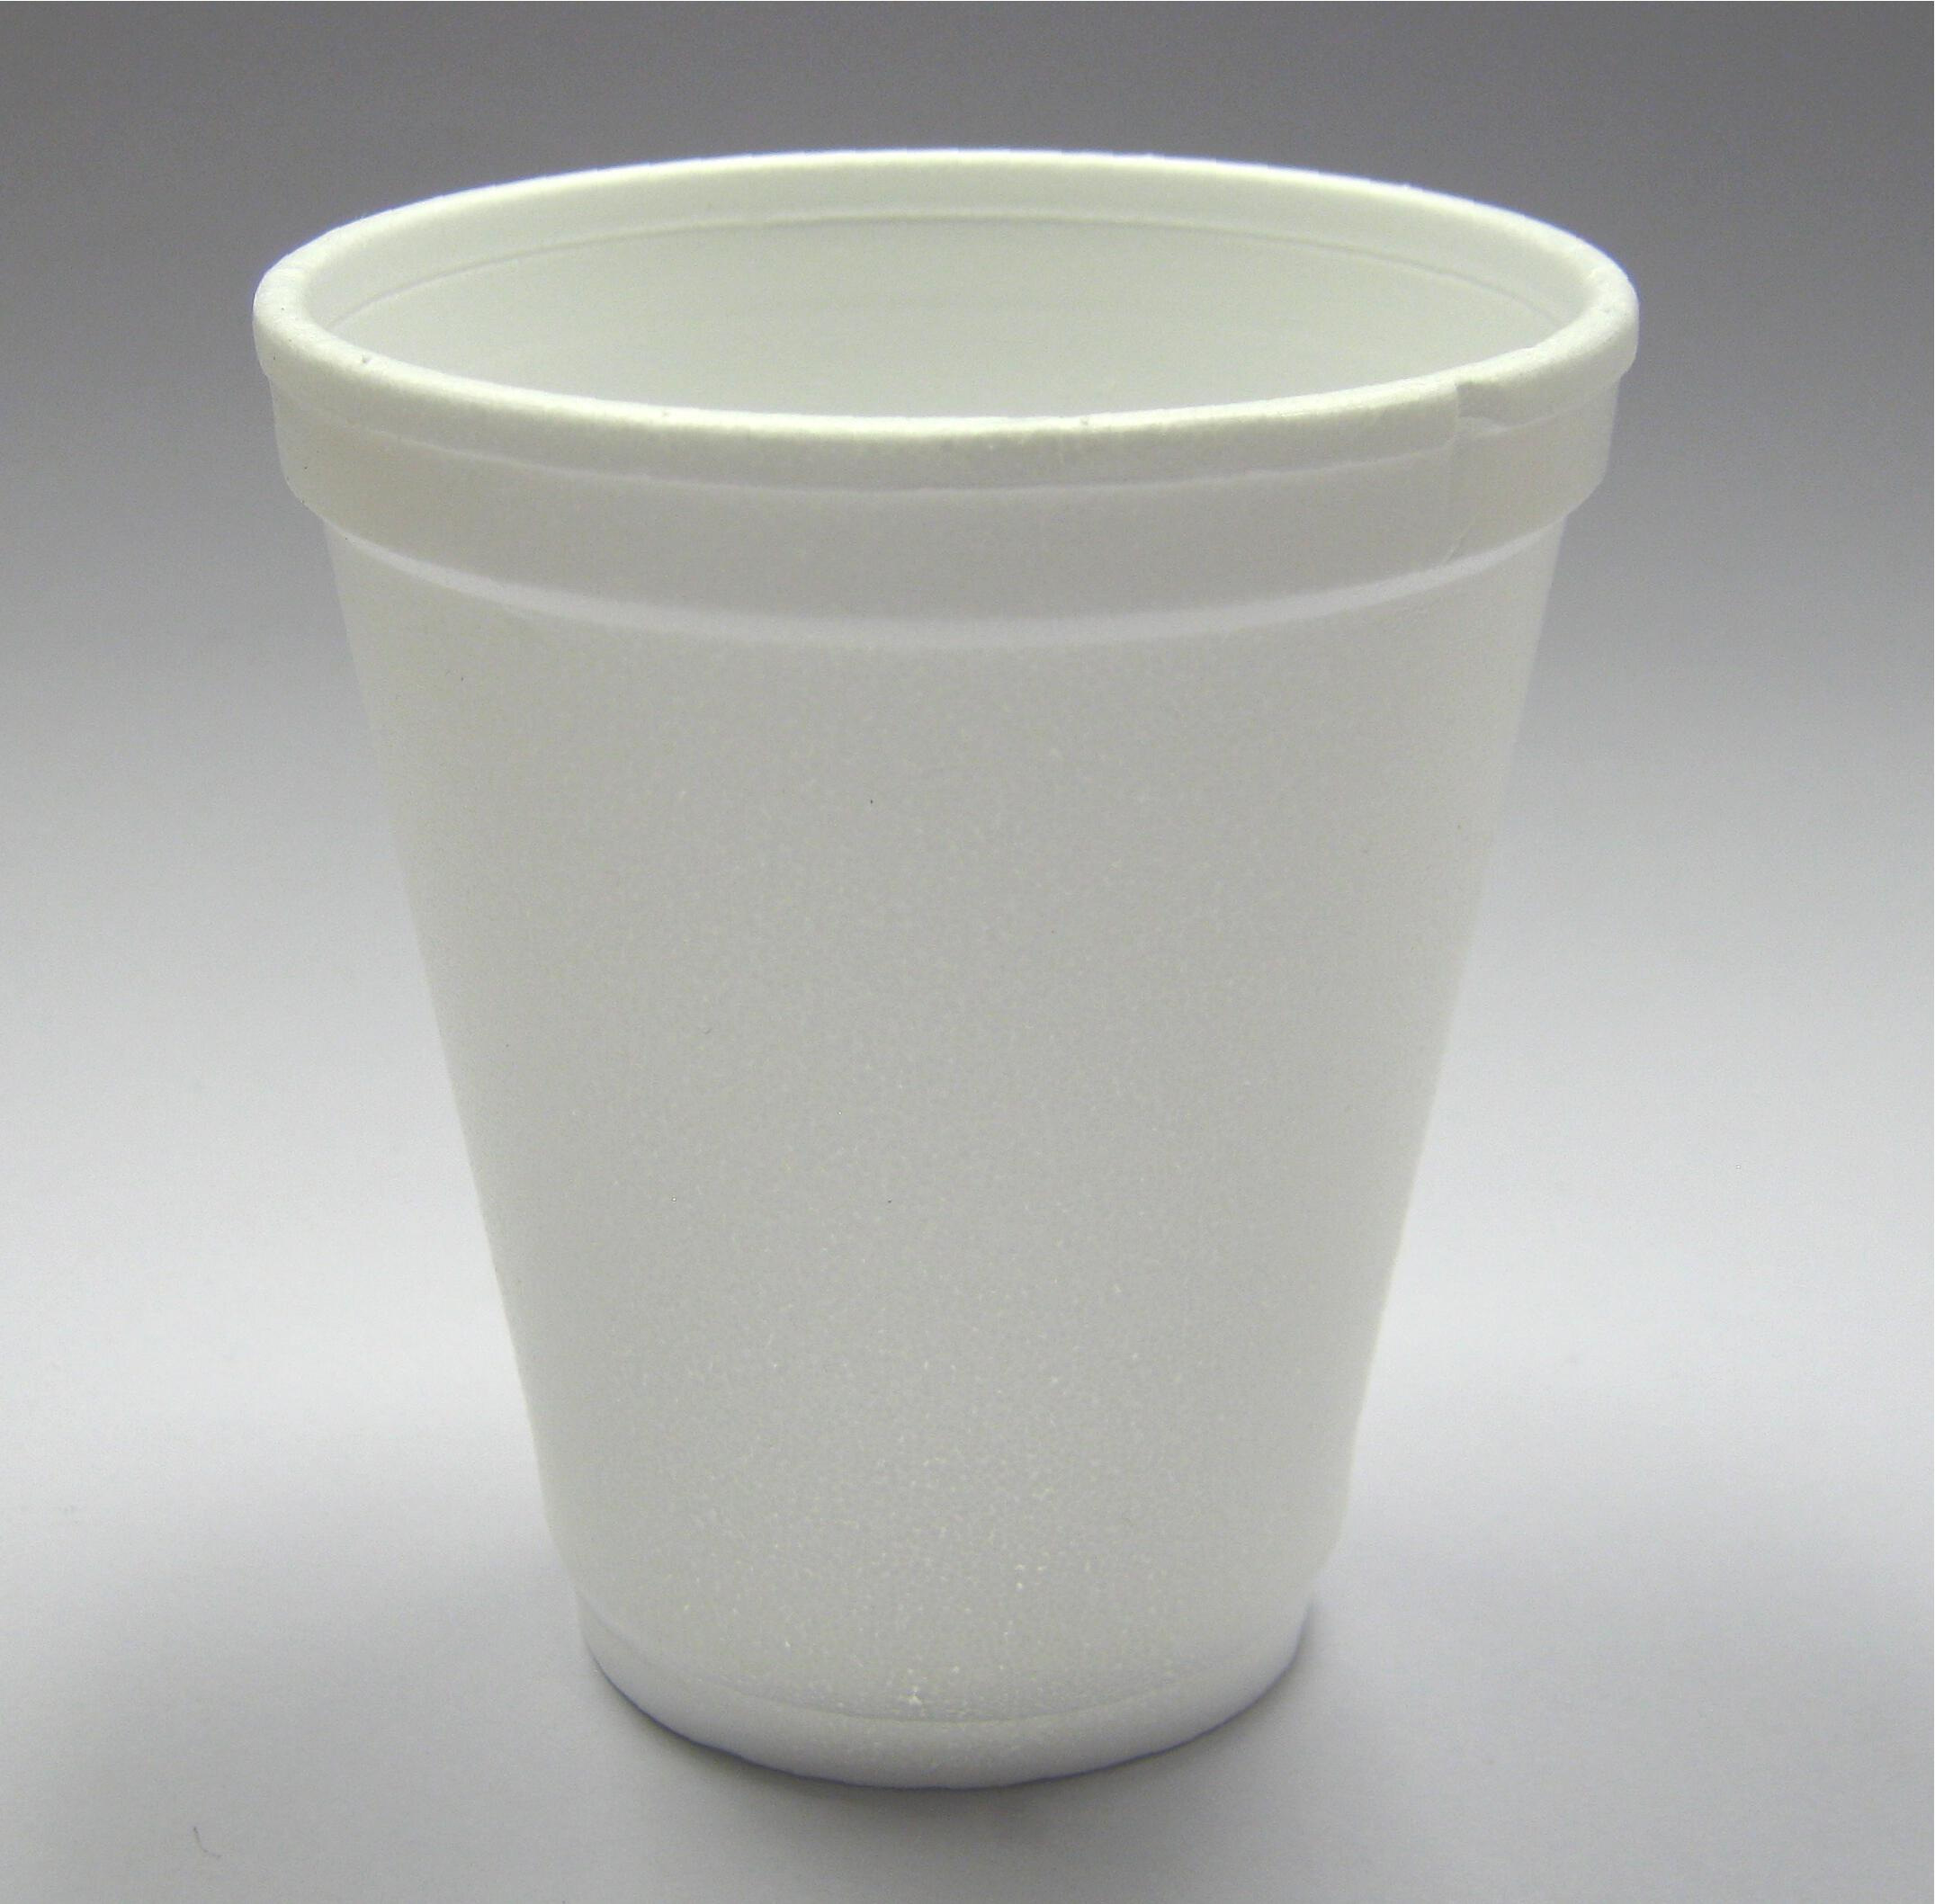 Cups Industrial First Aid Supplies